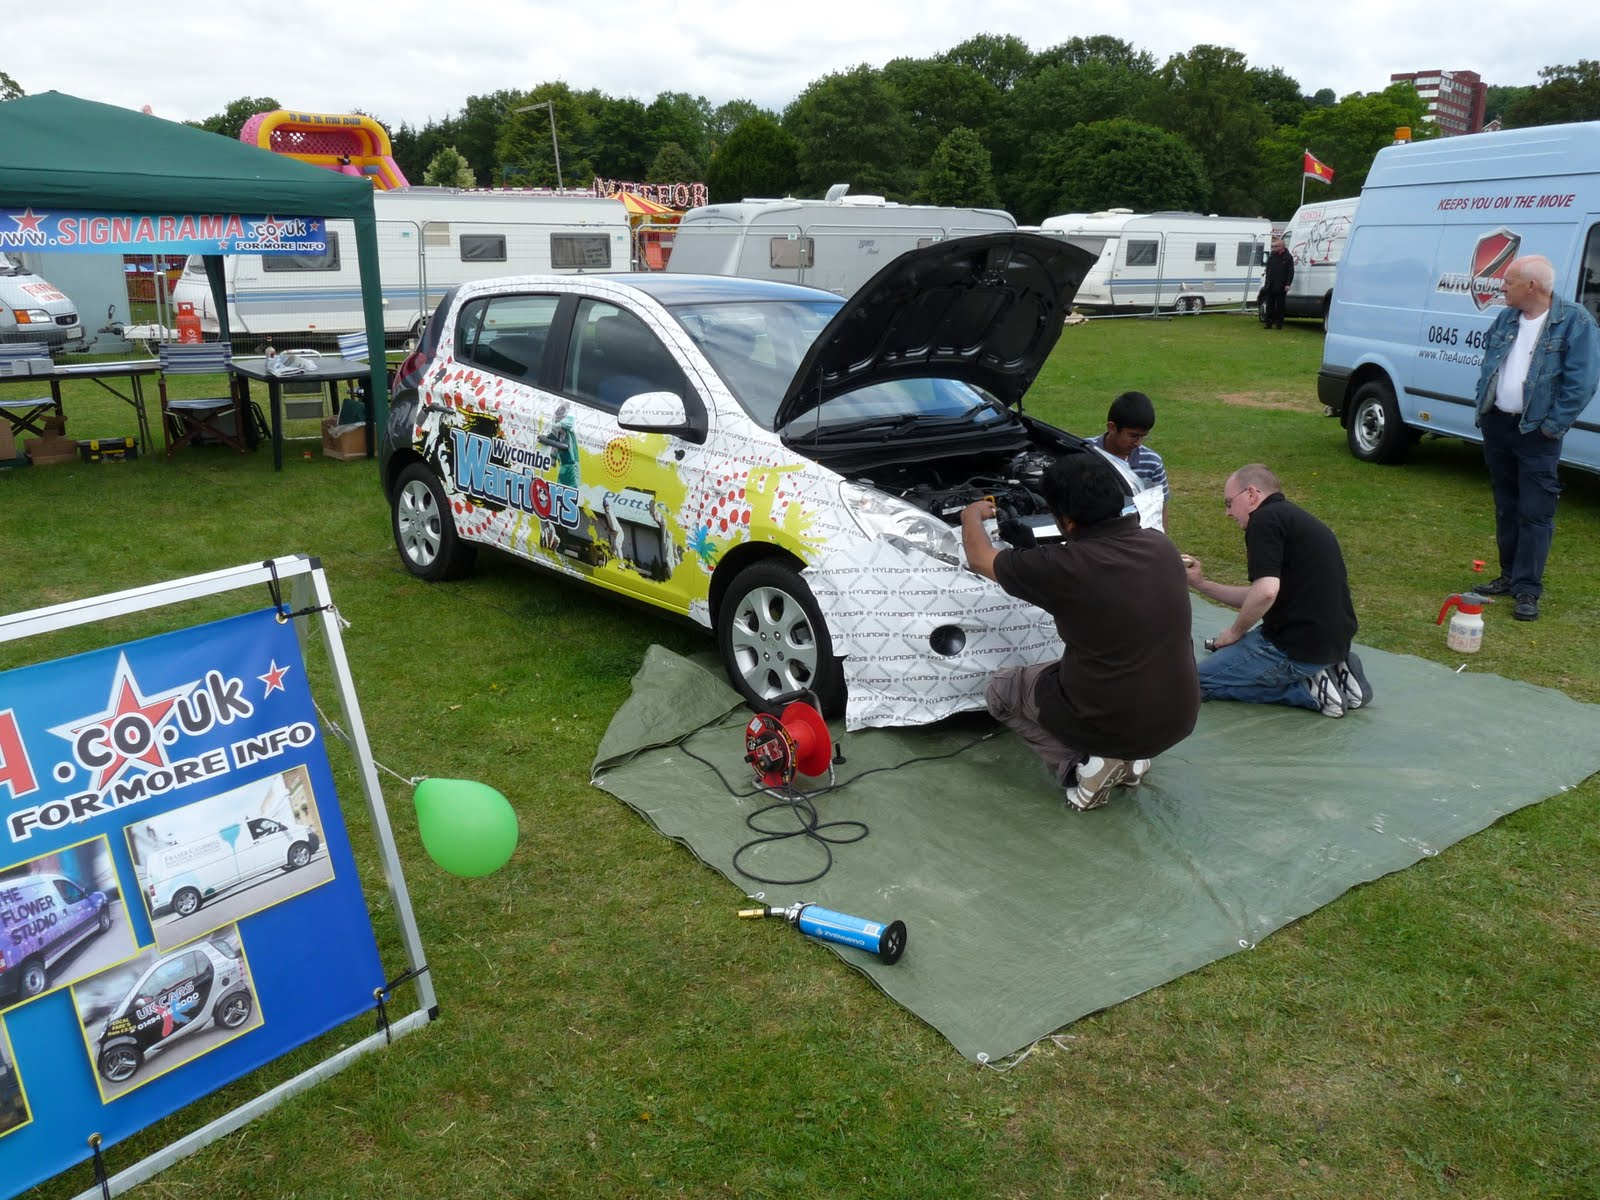 Platts hyundai used car dealership in high wycombe - On Another Stand High Wycombe Based Sign Writers Sign A Rama Showed Their Prowess By Wrapping A Hyundai I20 Supplied By Platts To High Wycombe Cricket Club